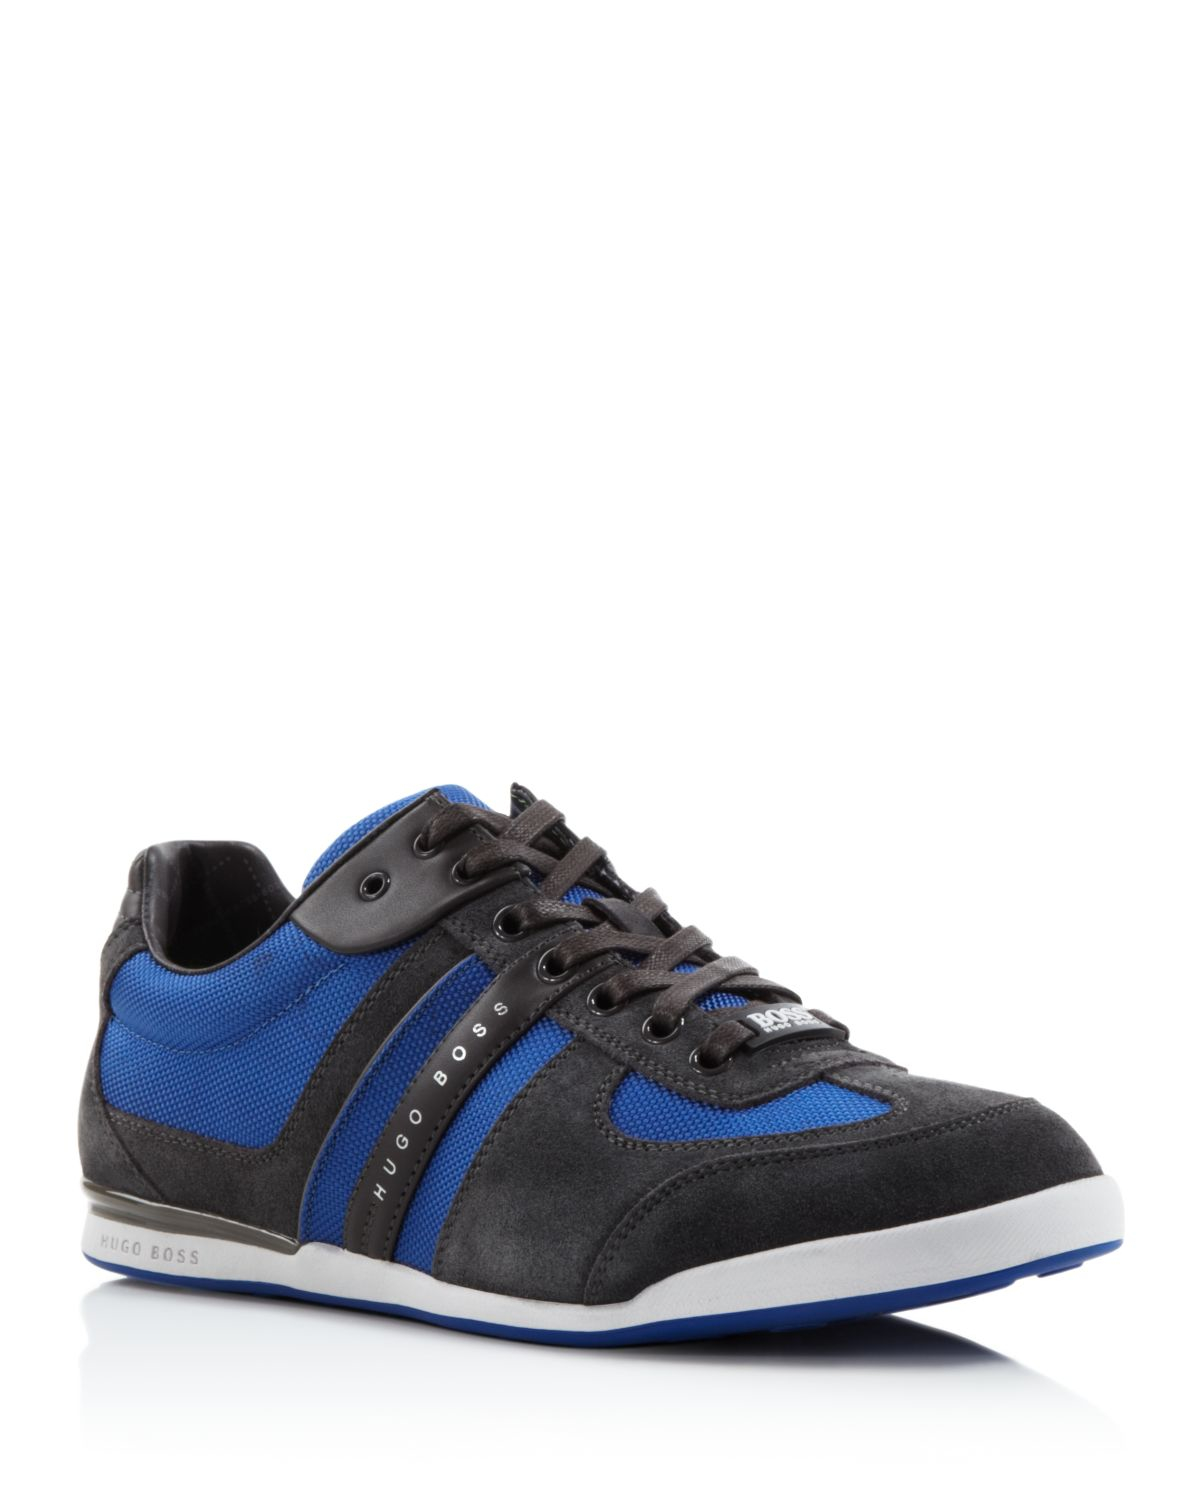 lyst boss boss green akeen sneakers in blue for men. Black Bedroom Furniture Sets. Home Design Ideas